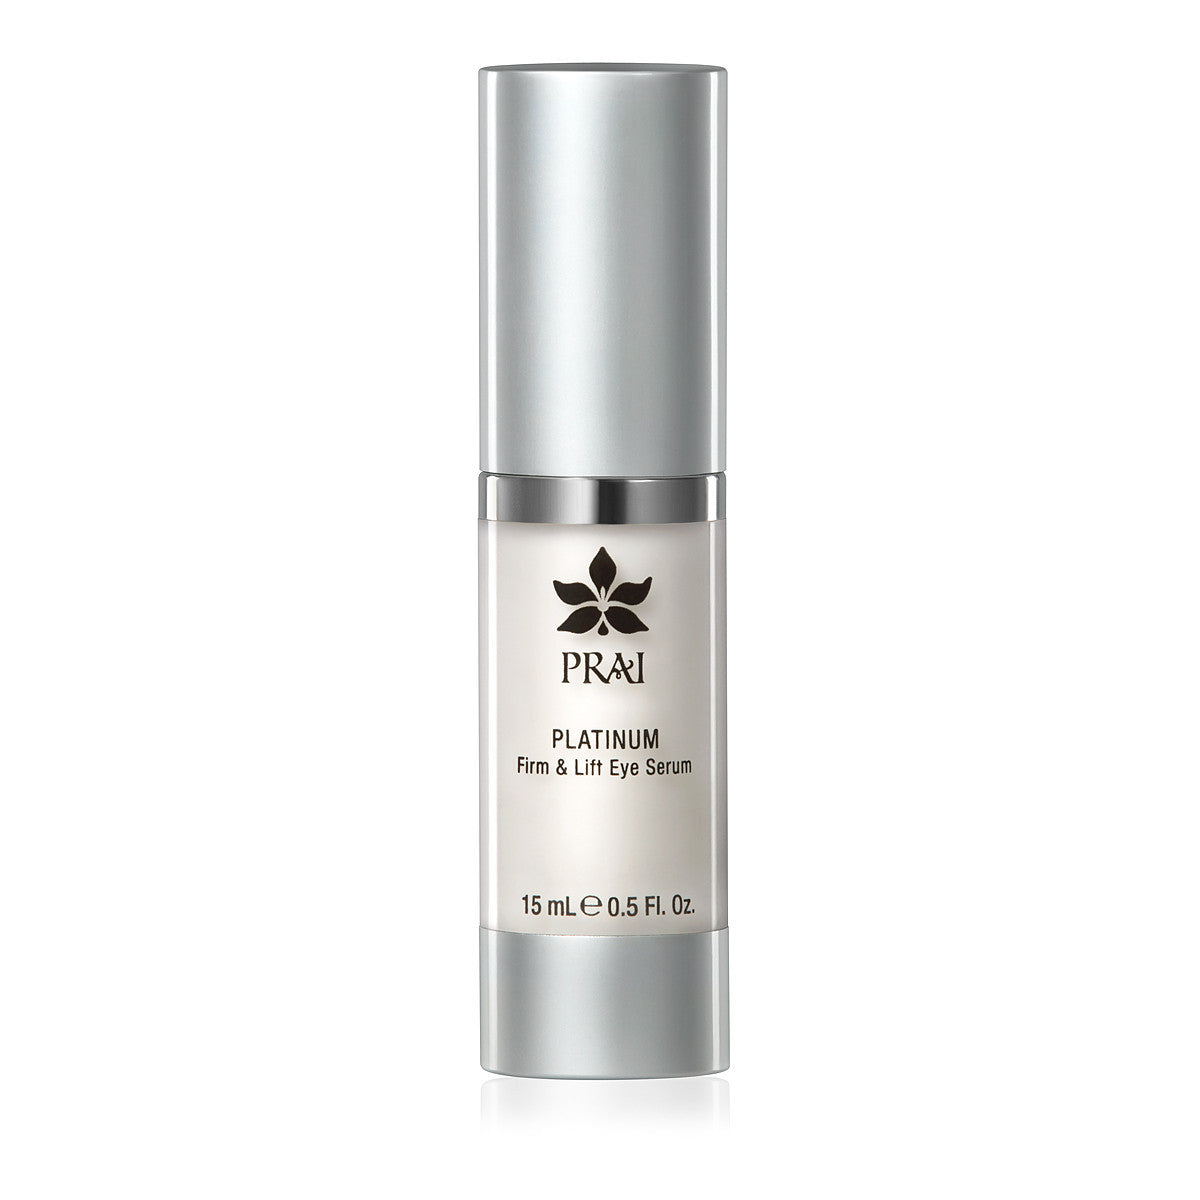 Platinum Firm & Lift Eye Serum